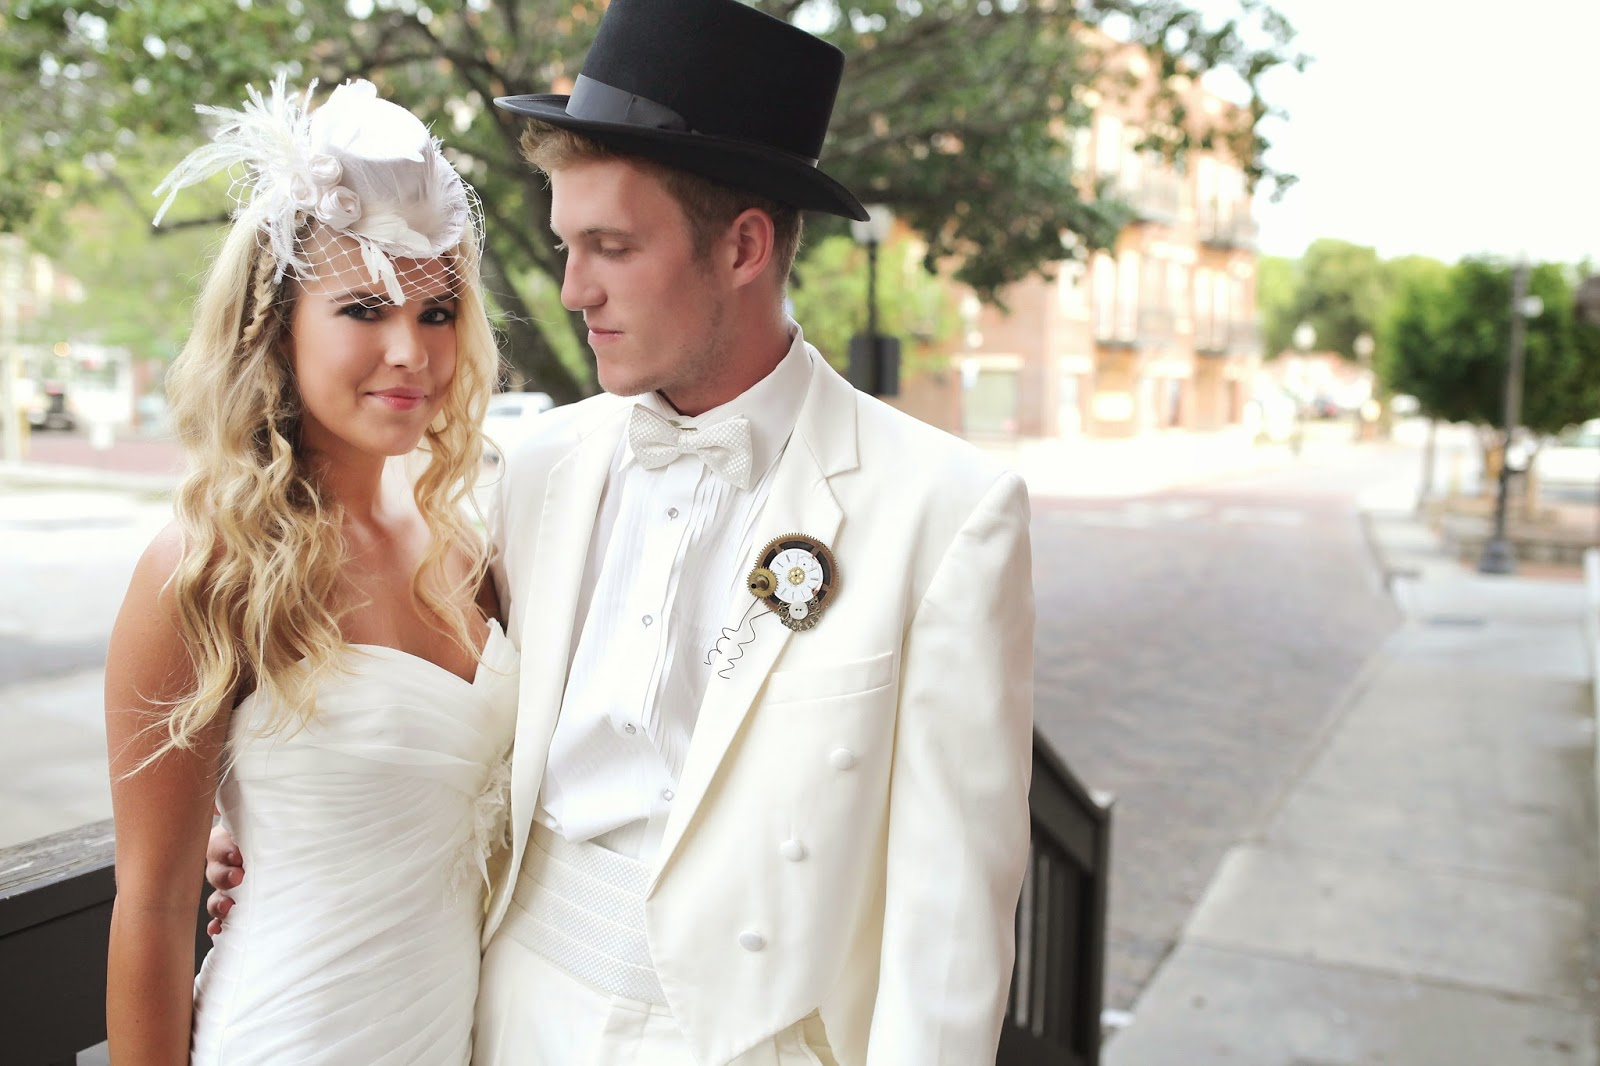 The Fake Wedding - an Alice in Wonderland inspired bridal show ...